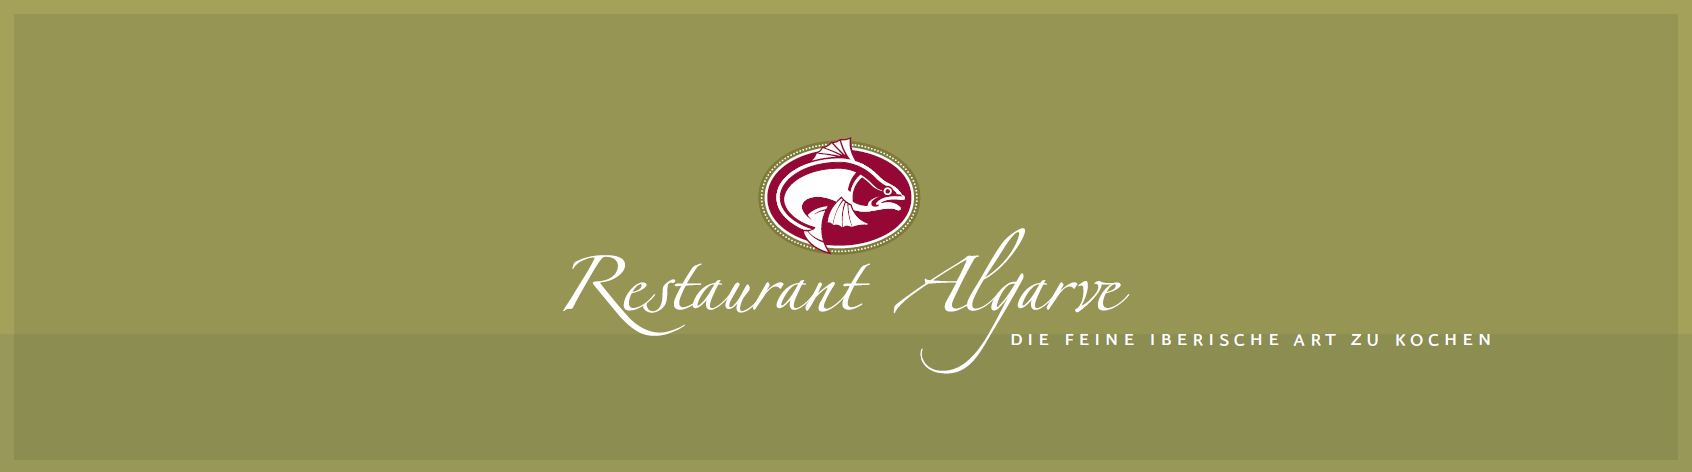 Restaurant Algarve